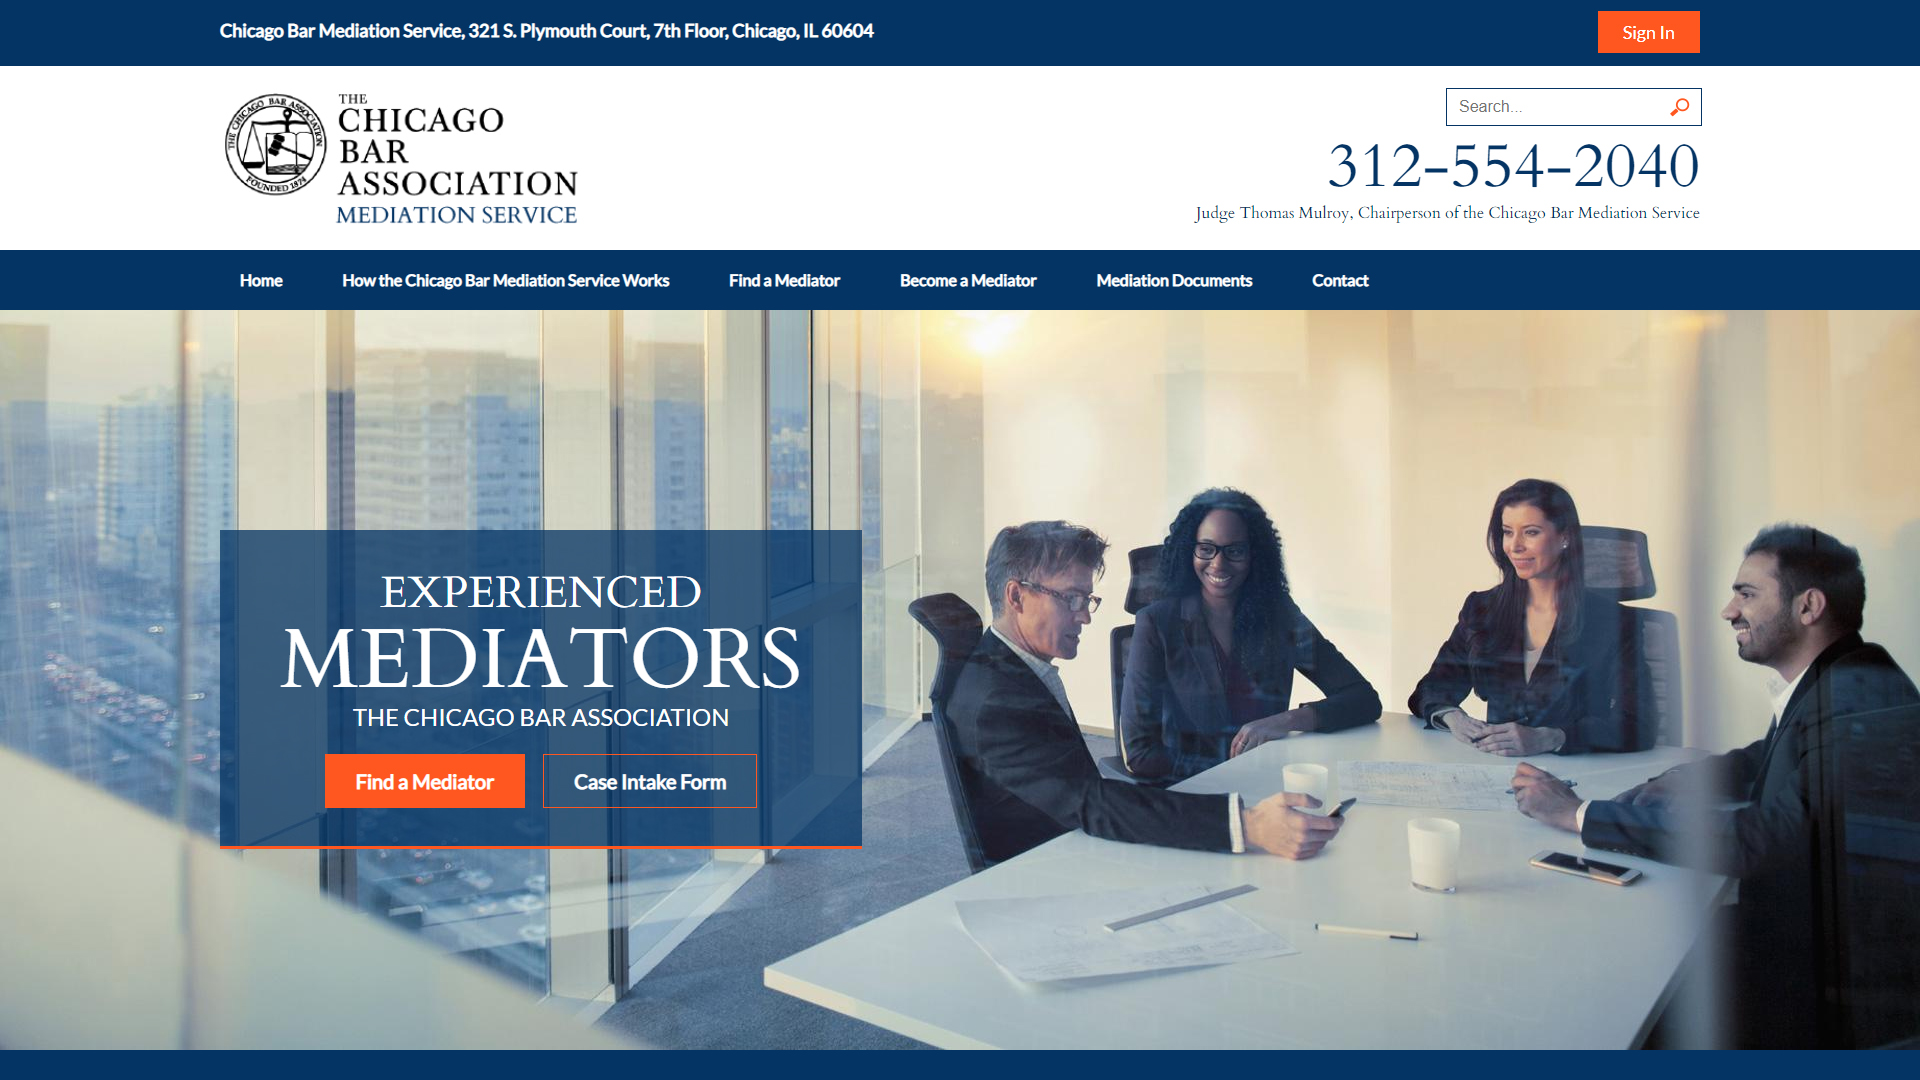 CBA Mediation Service Website